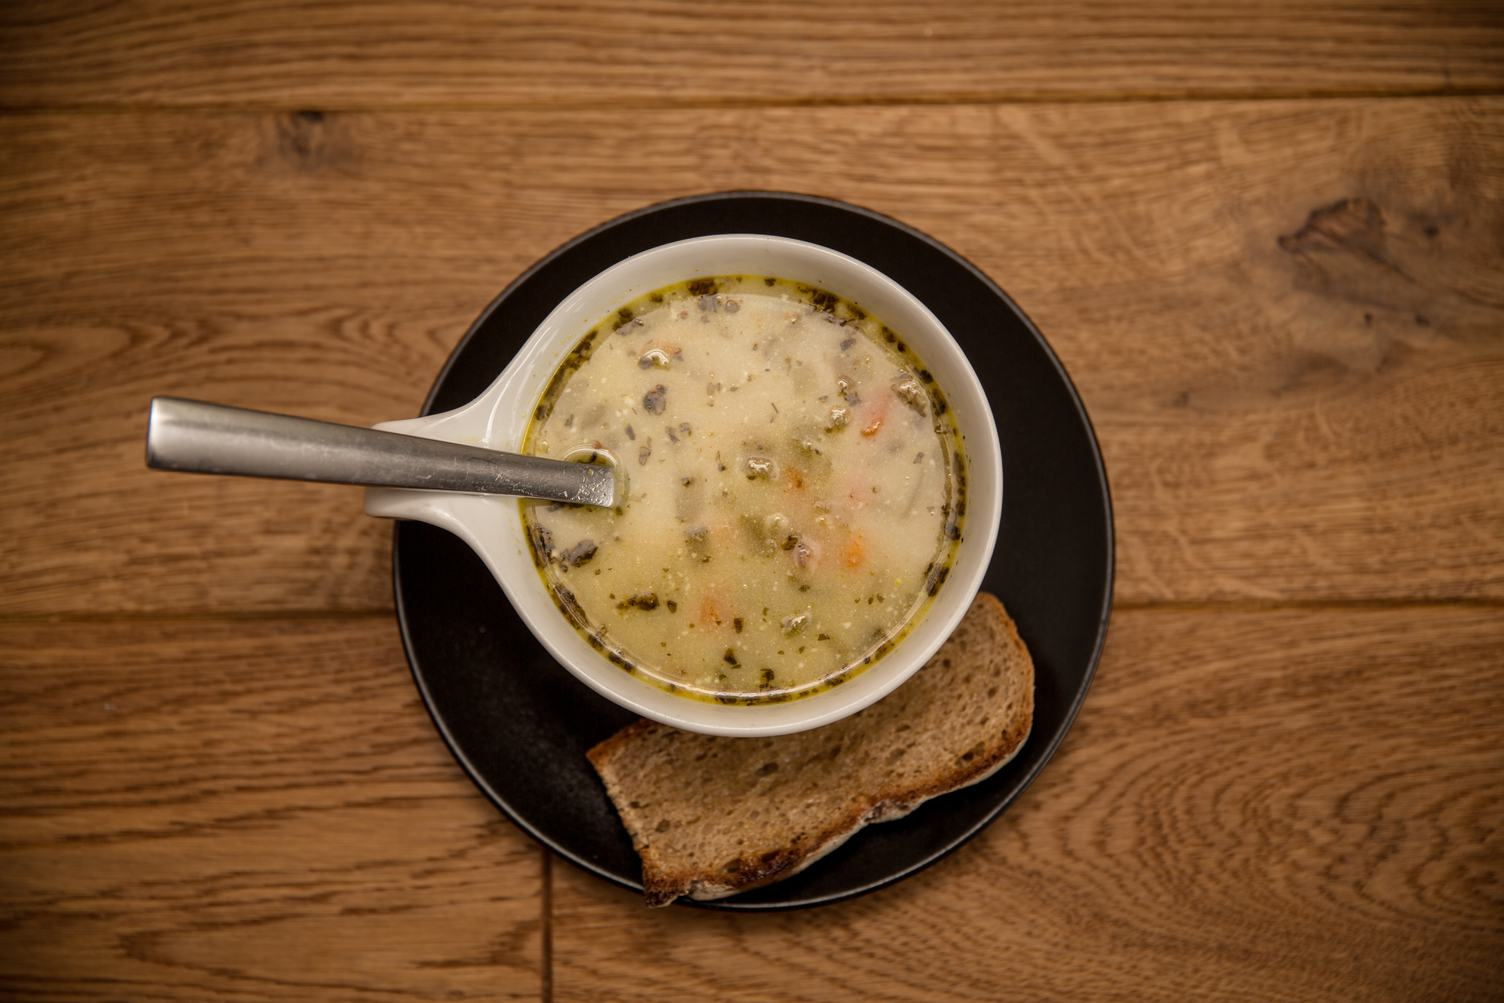 Bowl of Cucumber Soup